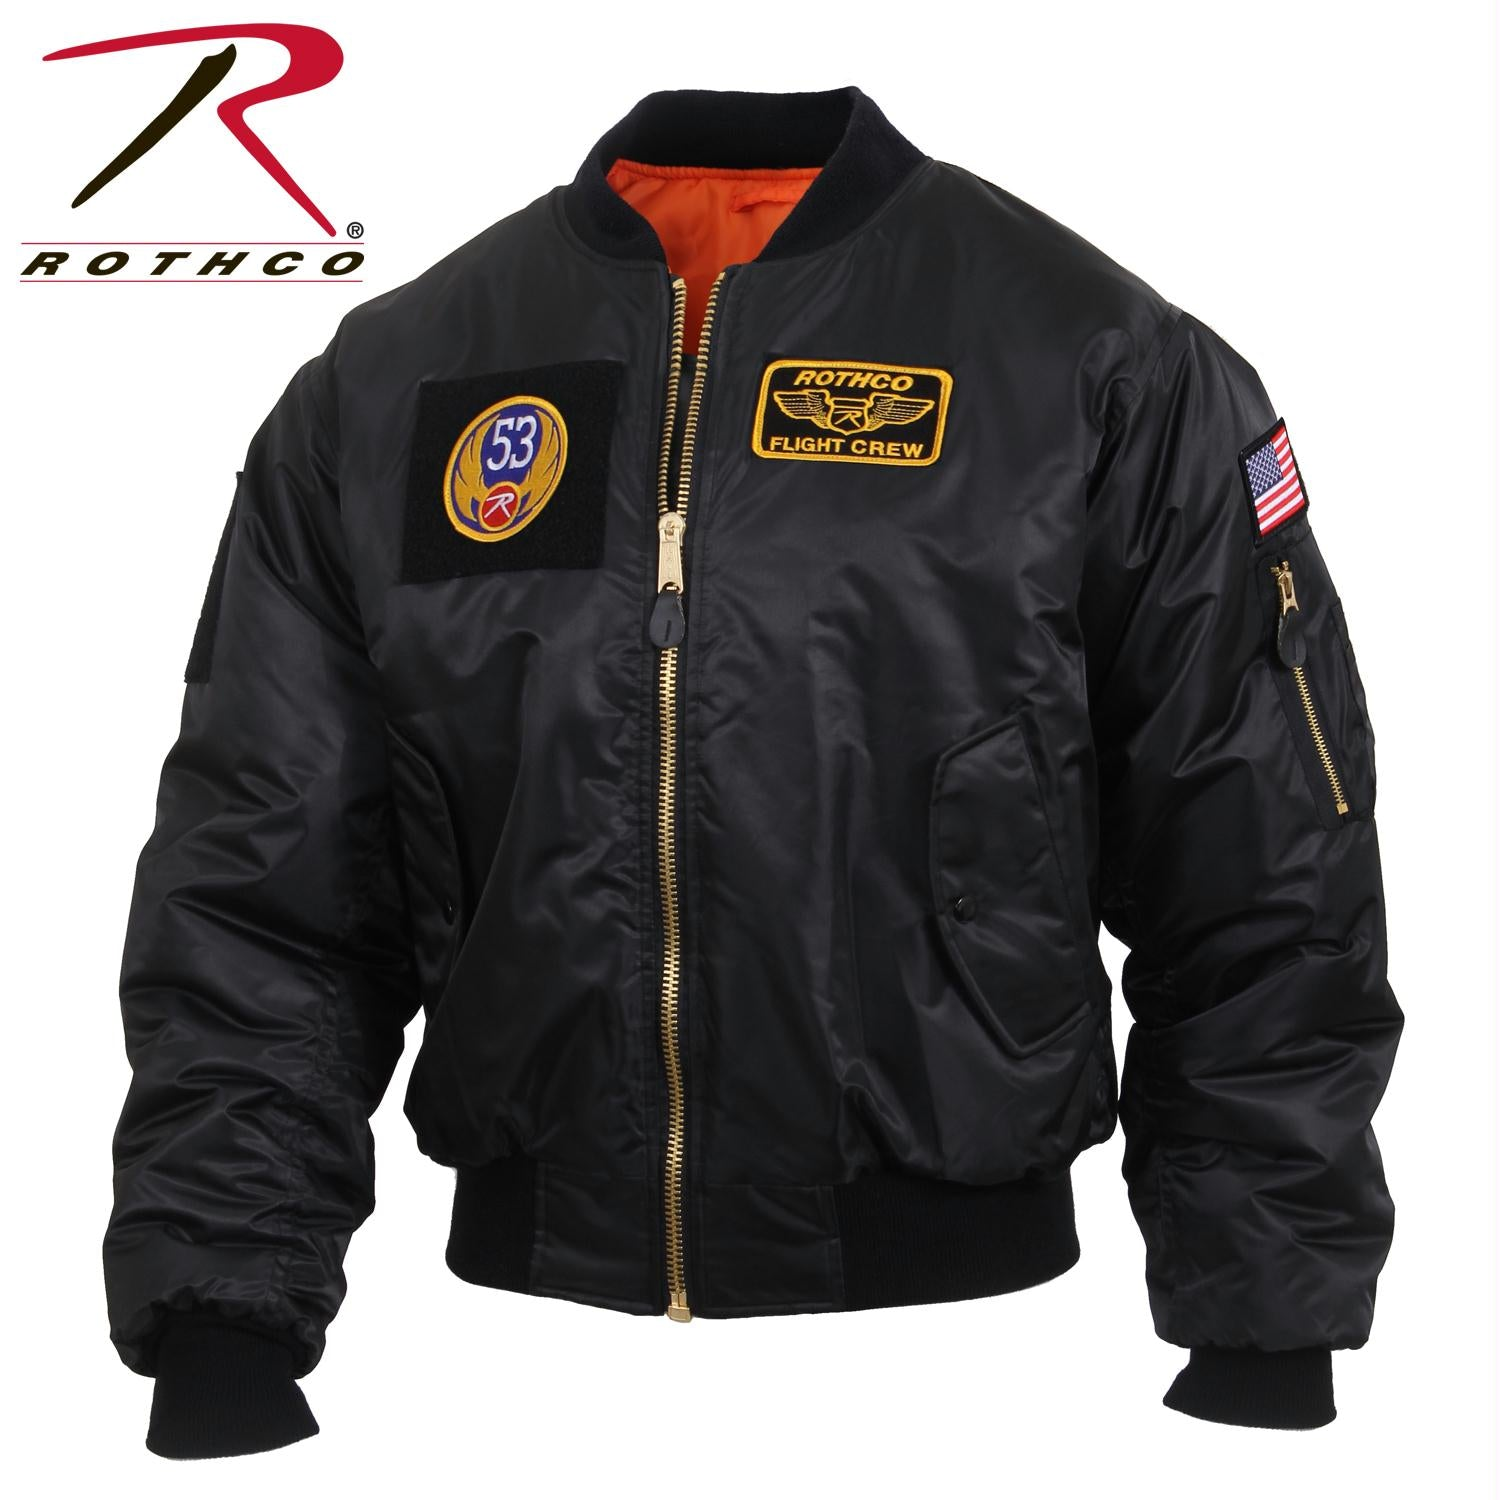 Rothco MA-1 Flight Jacket with Patches - Black / 3XL